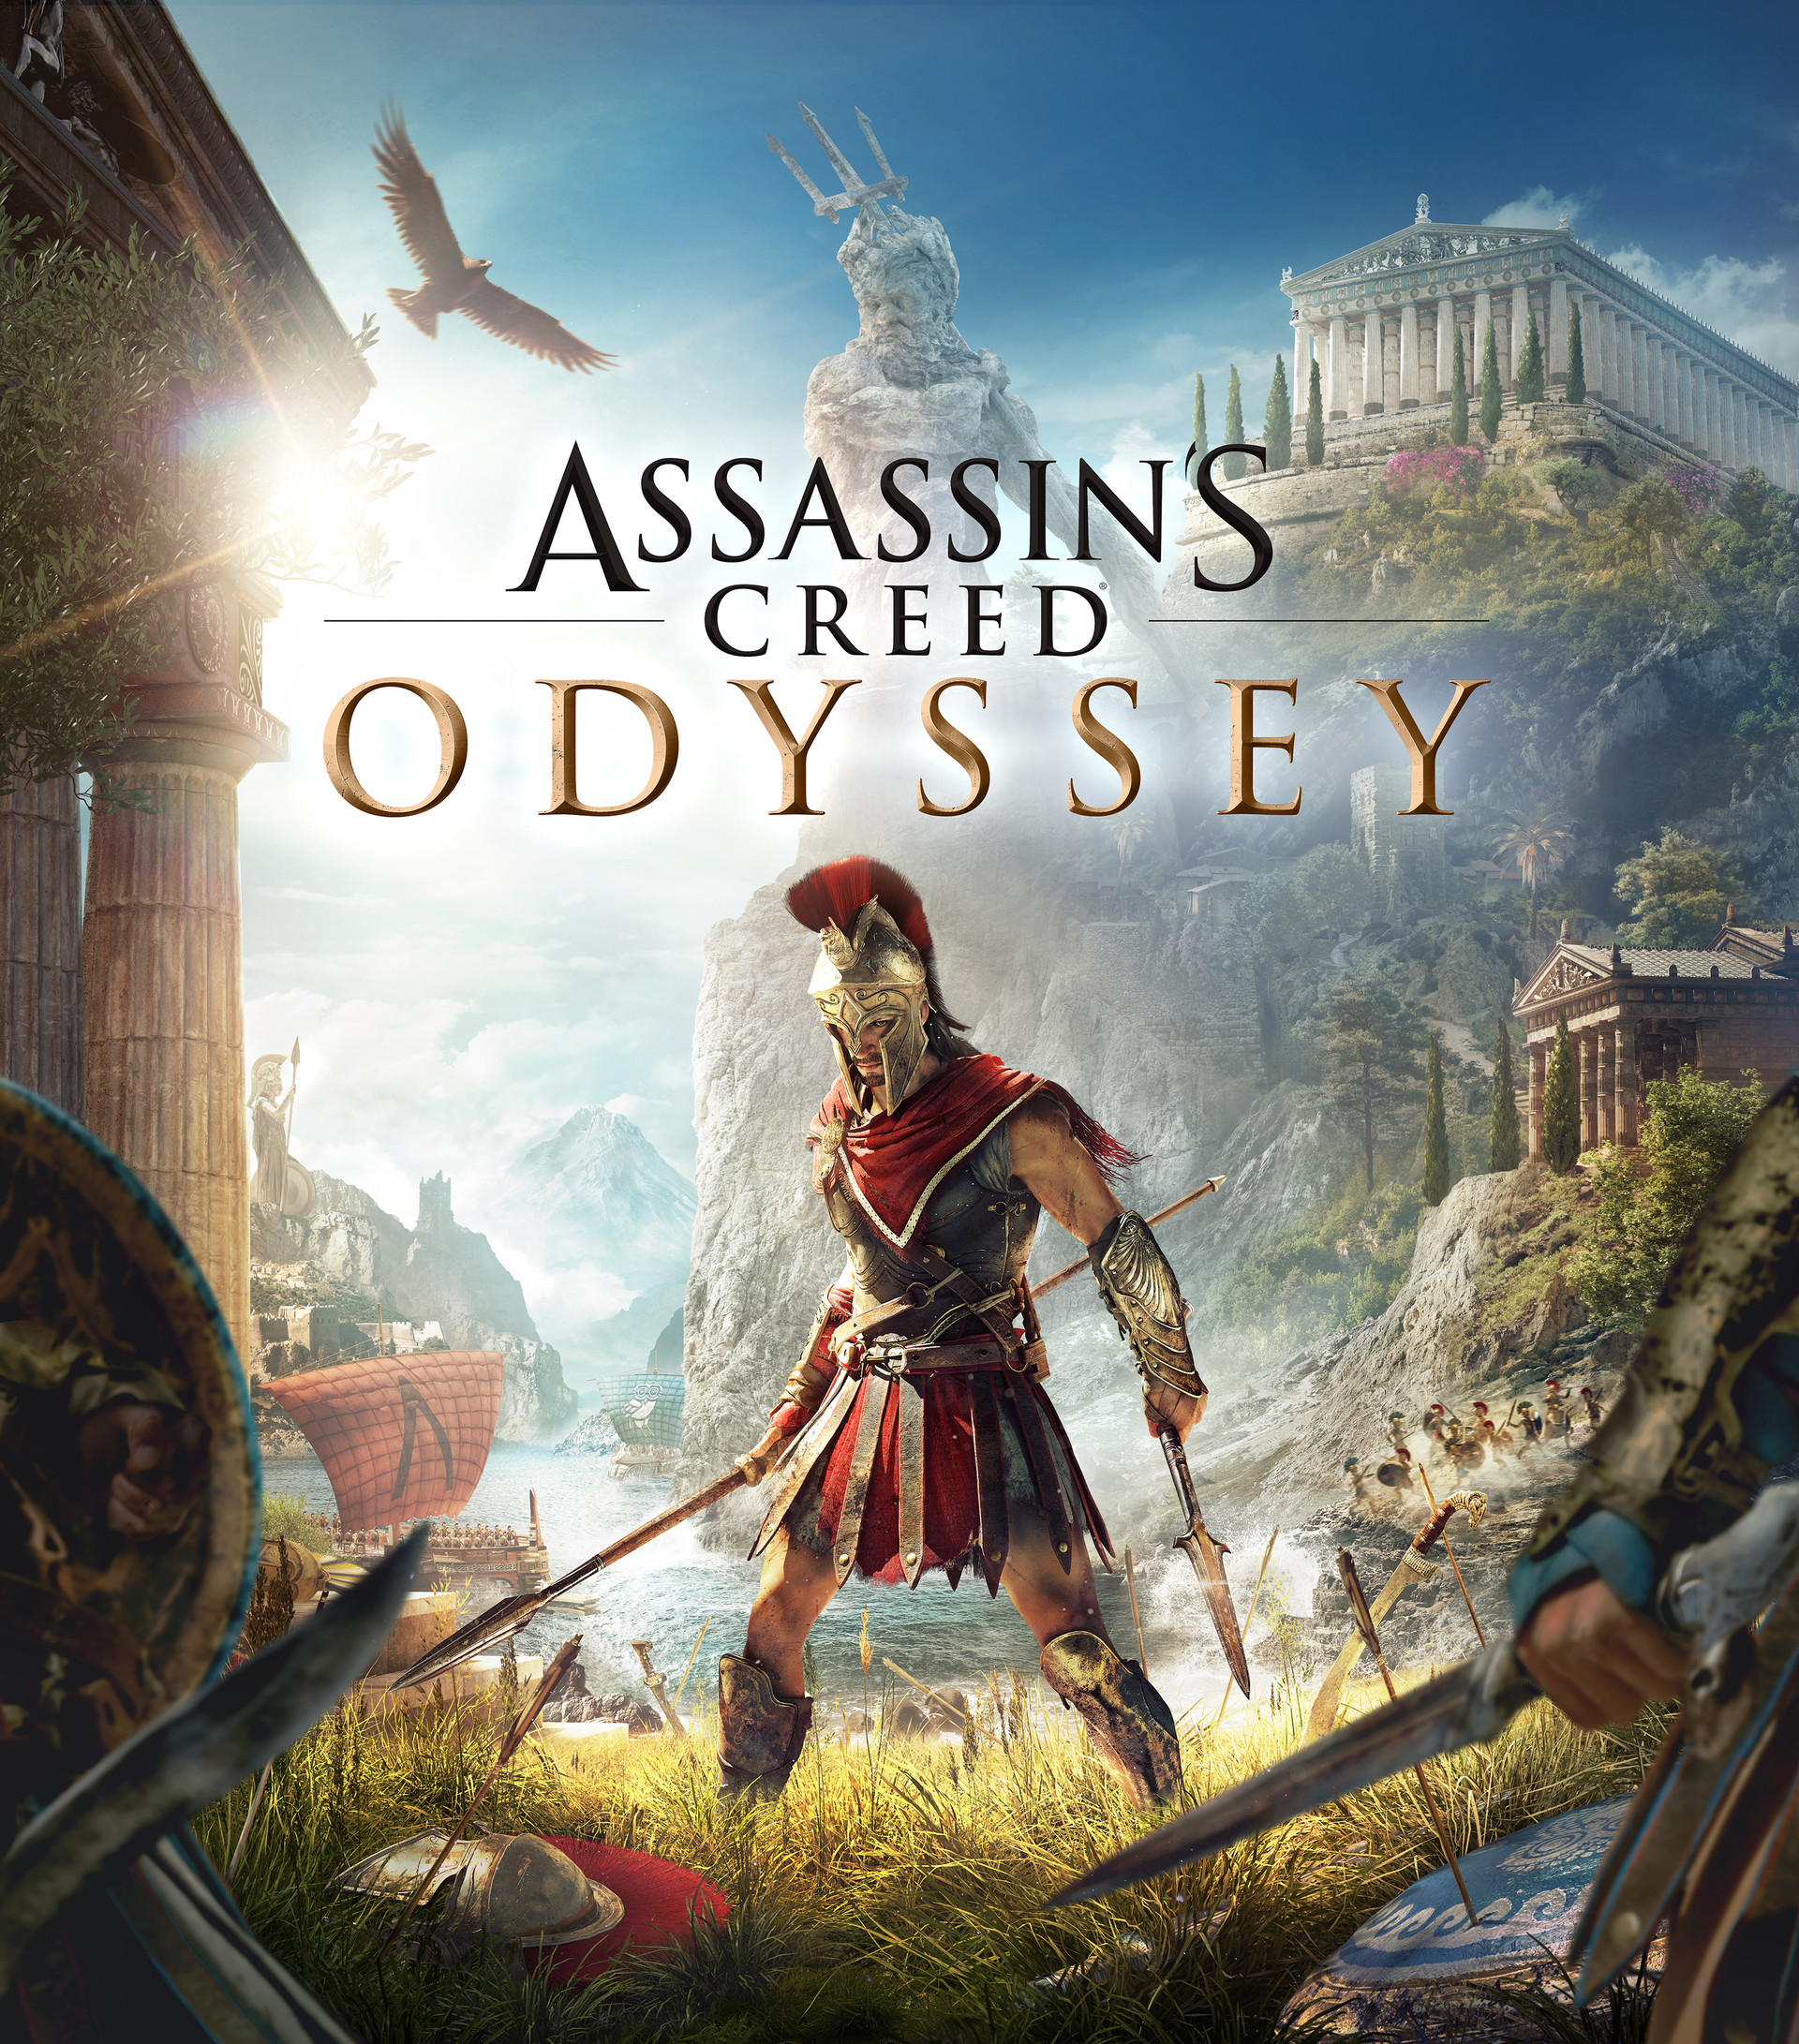 seed Seven - Assassin's Creed ODYSSEY